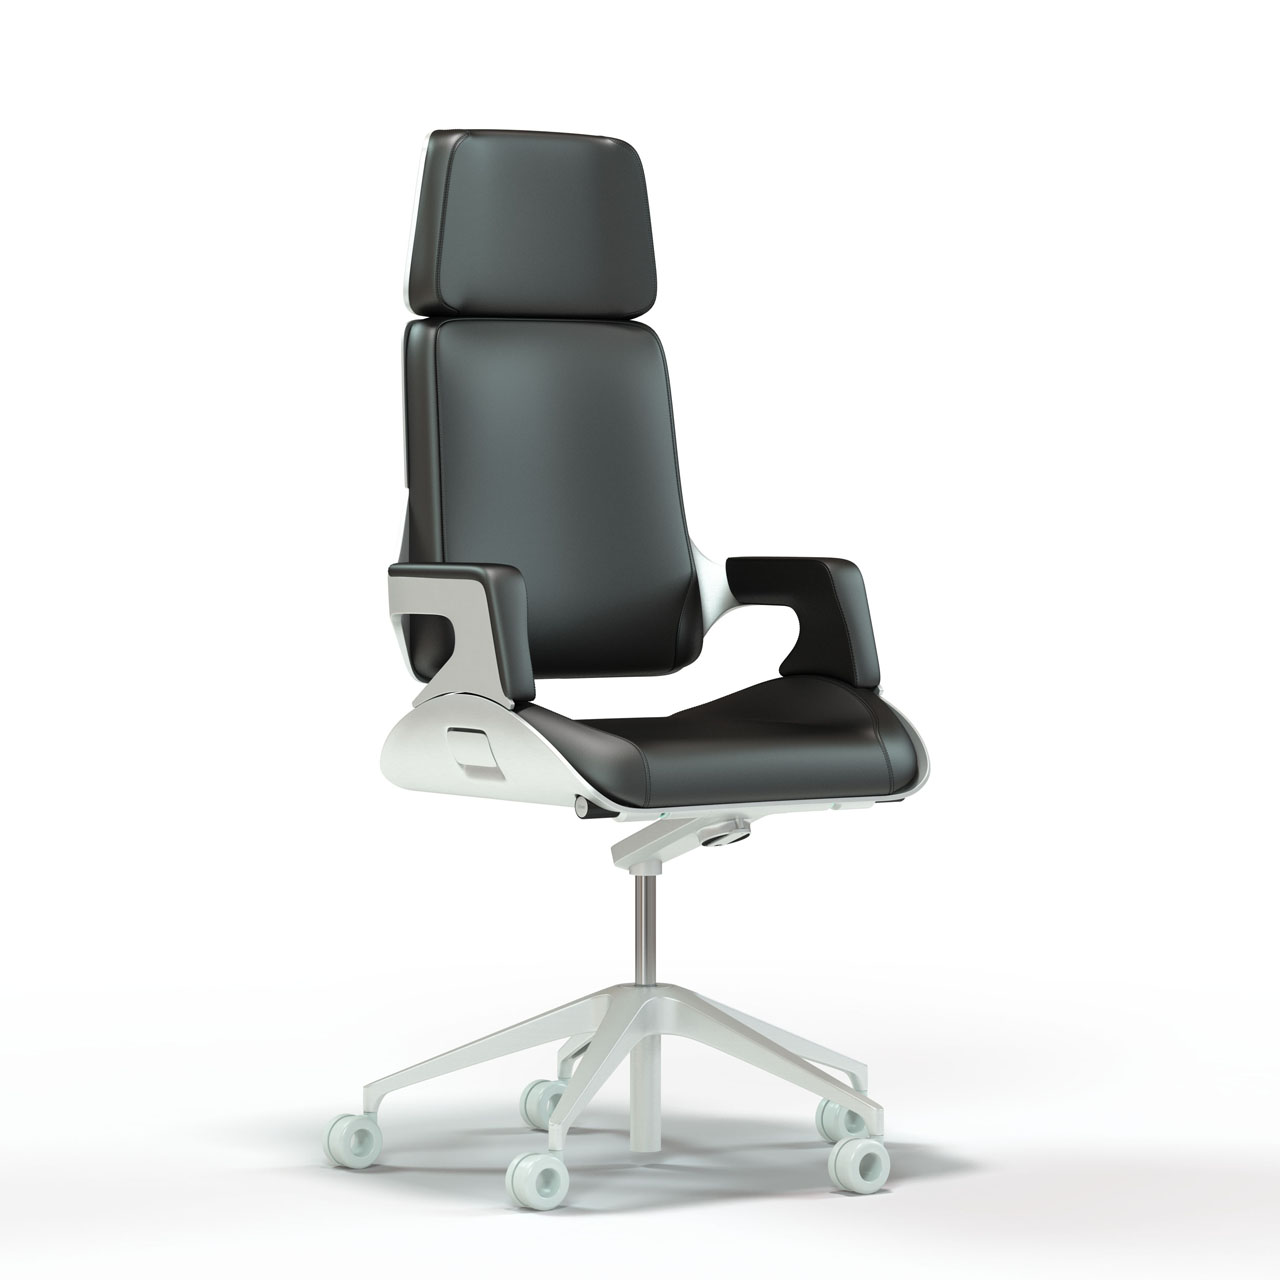 Rendering of a sleek ultra modern aluminum and leather high back task chair with polished base.